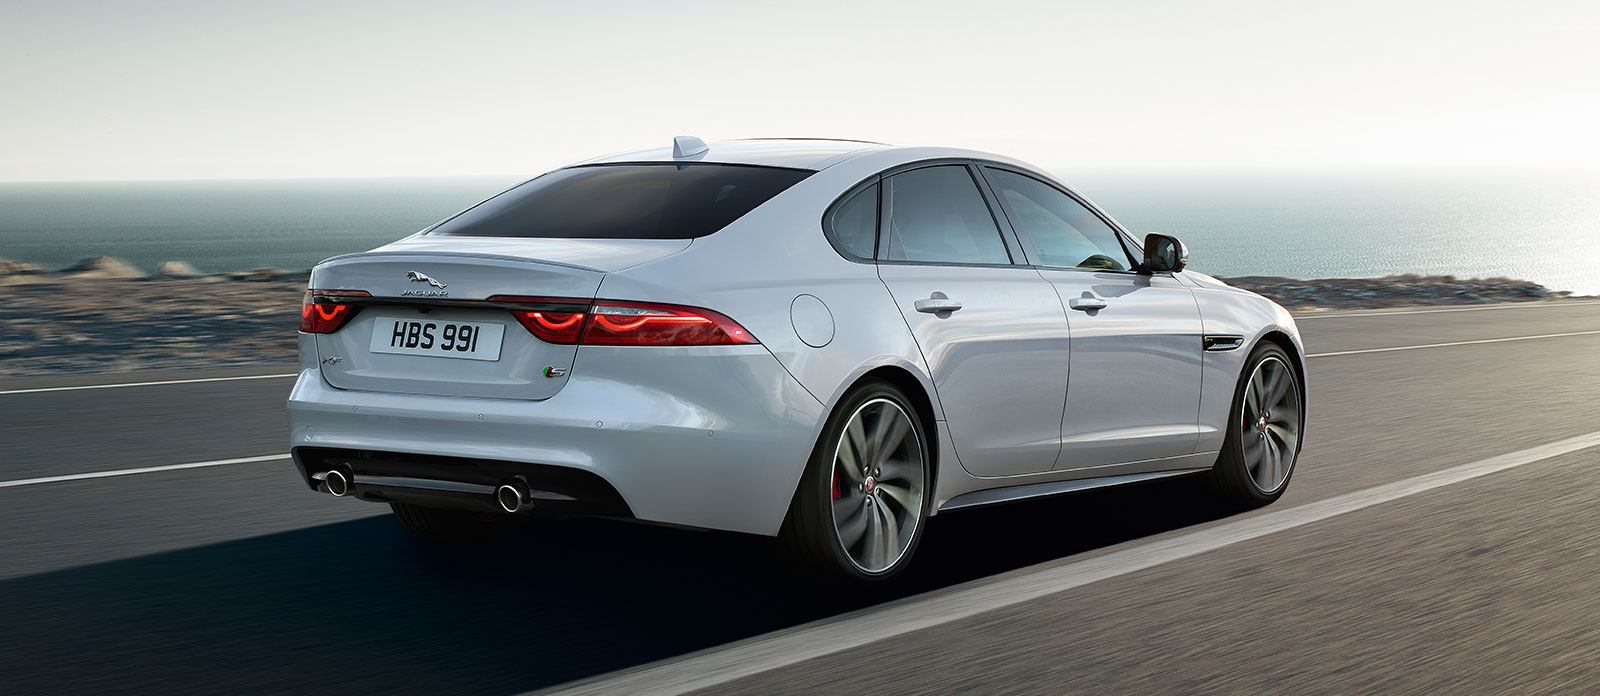 White XF Saloon driving on coastline.